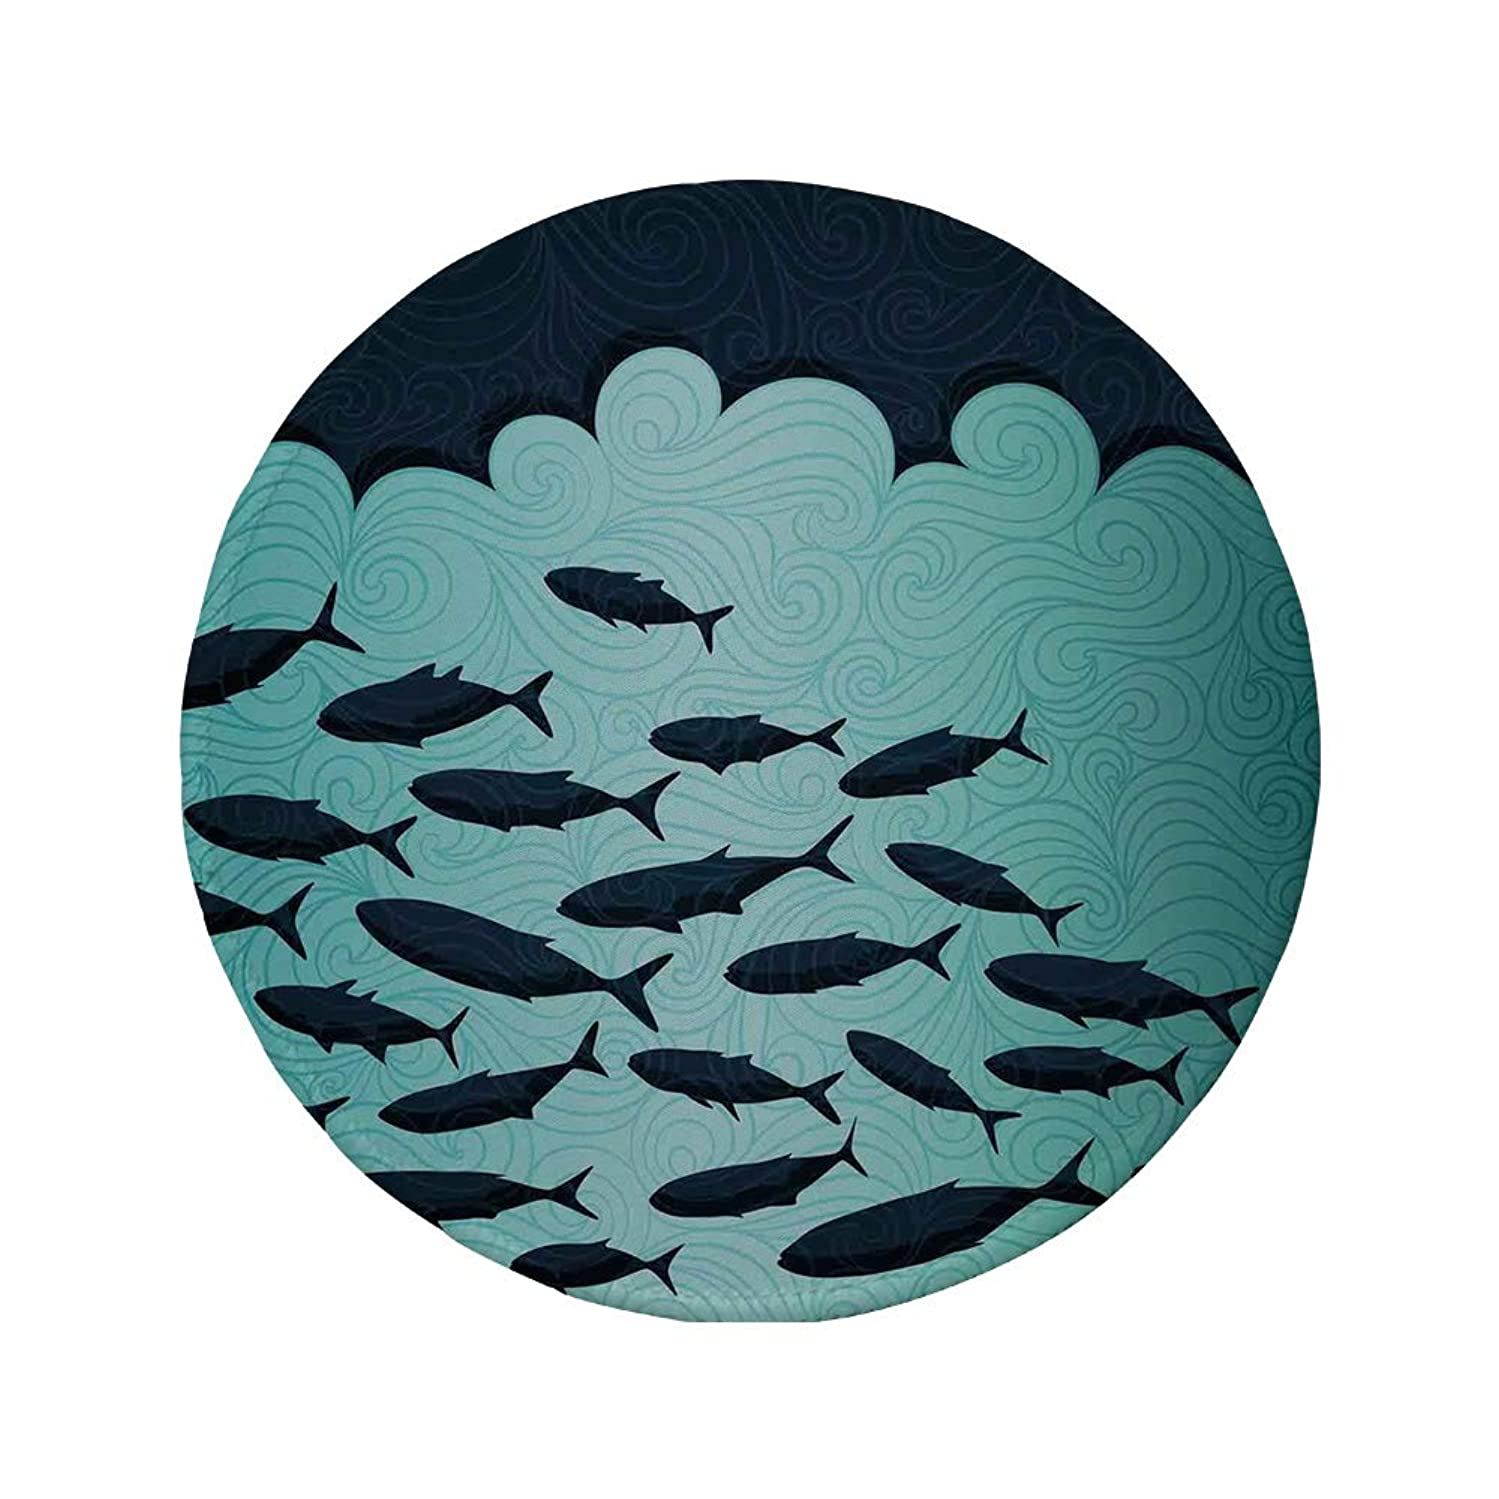 Non-Slip Rubber Round Mouse Pad,Ocean Animal Decor,Surreal Graphic Ornate Swirl Waves and Group of Fish Nautical Theme,Blue Turquoise,11.8